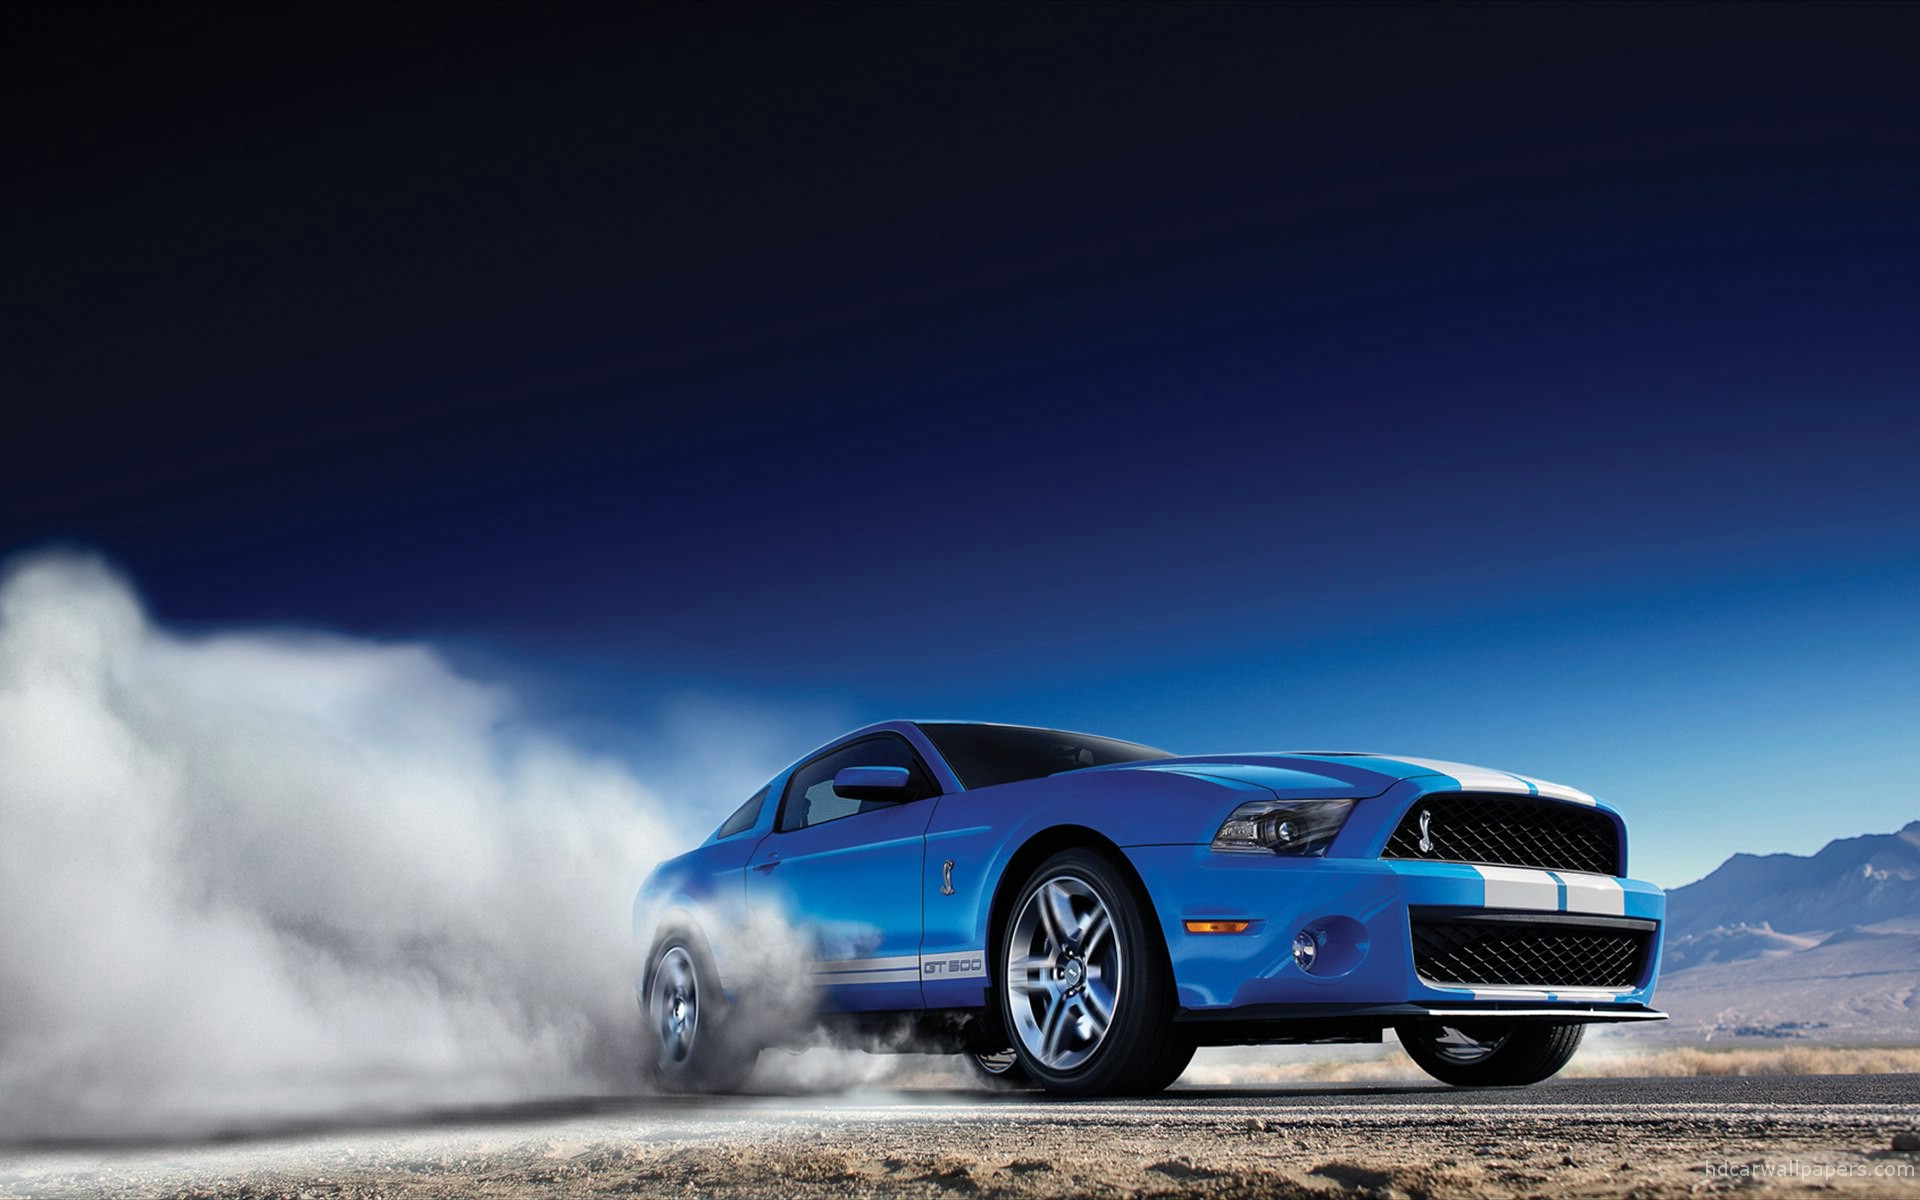 10 best shelby 1000 images on pinterest dream cars ford mustangs and american muscle cars